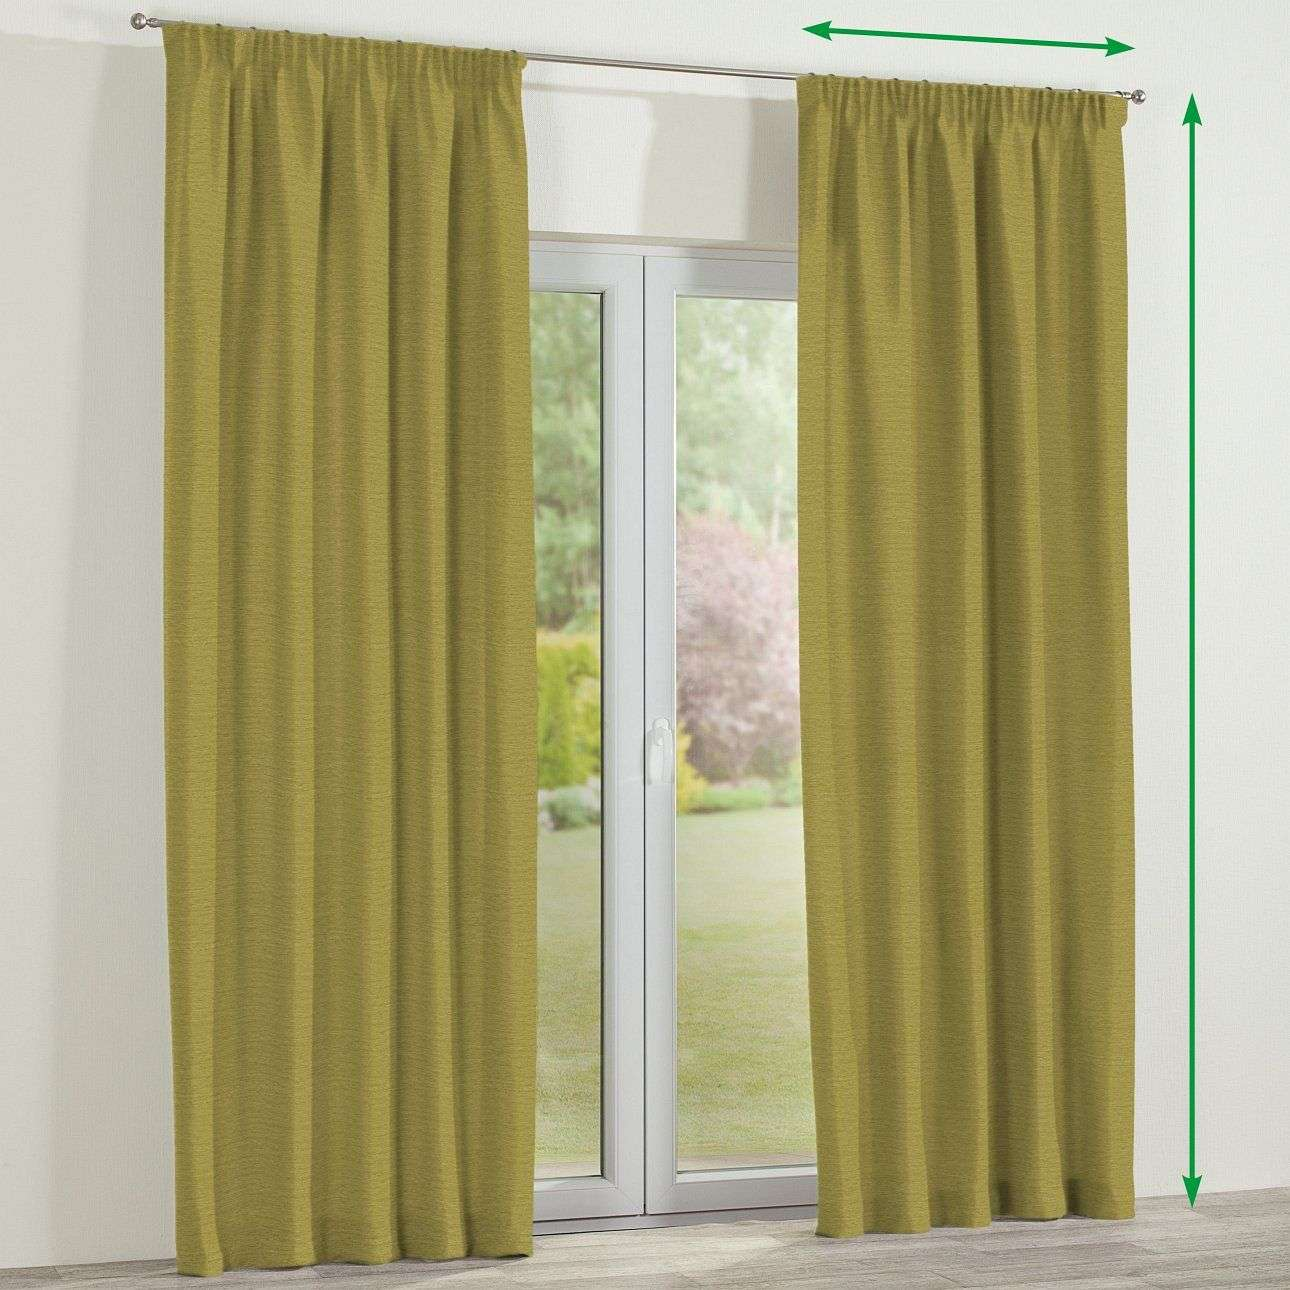 Pencil pleat lined curtains in collection Chenille, fabric: 160-47